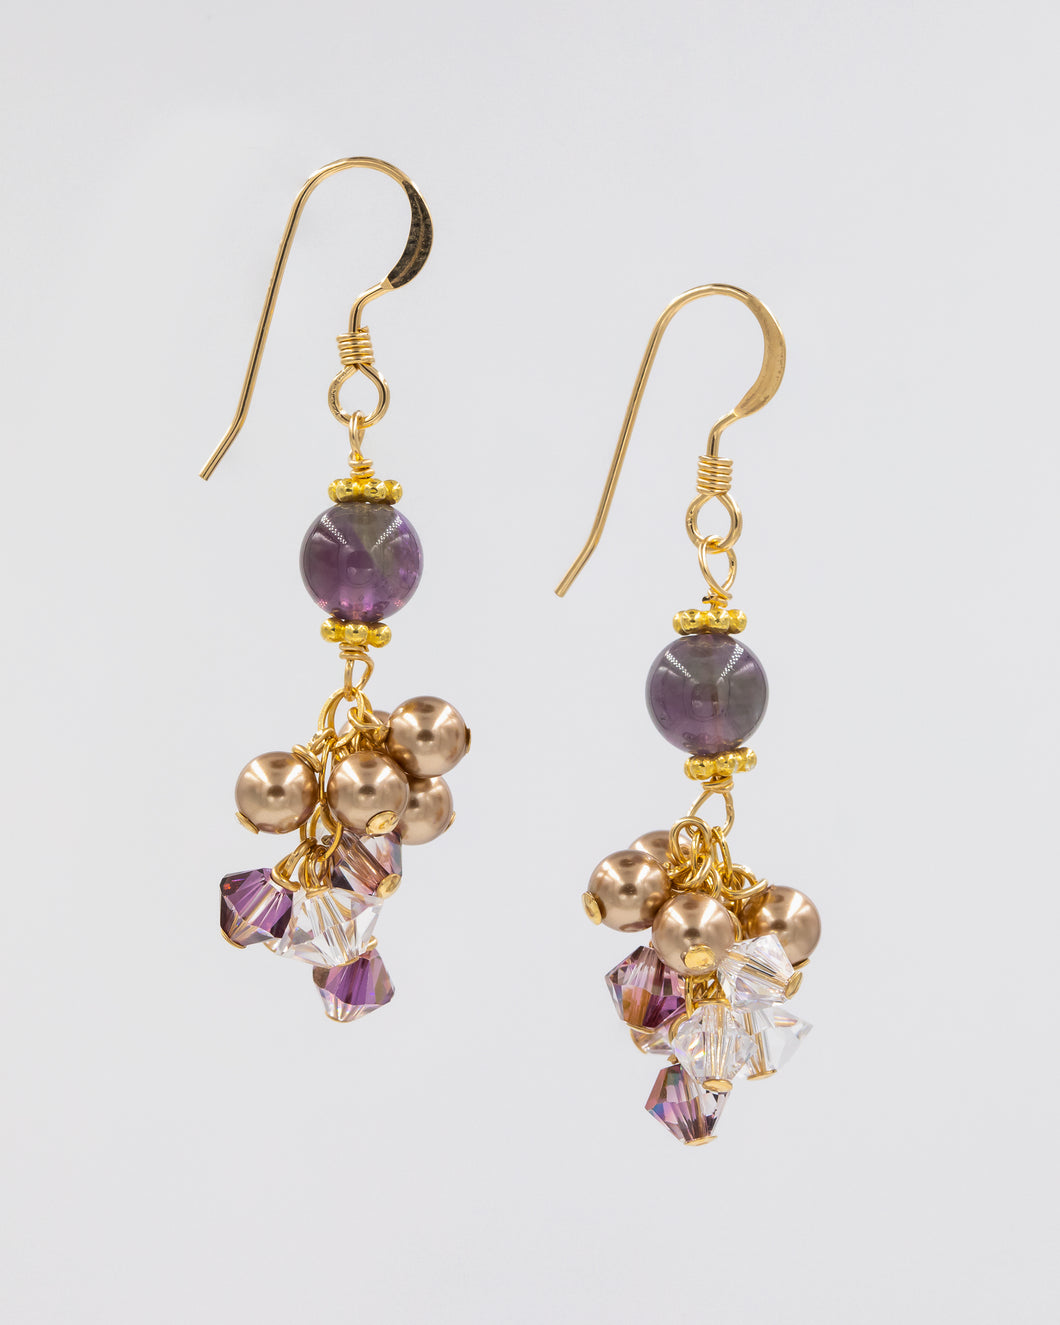 Picture of earrings with amethyst and Swarovski crystal and pearls